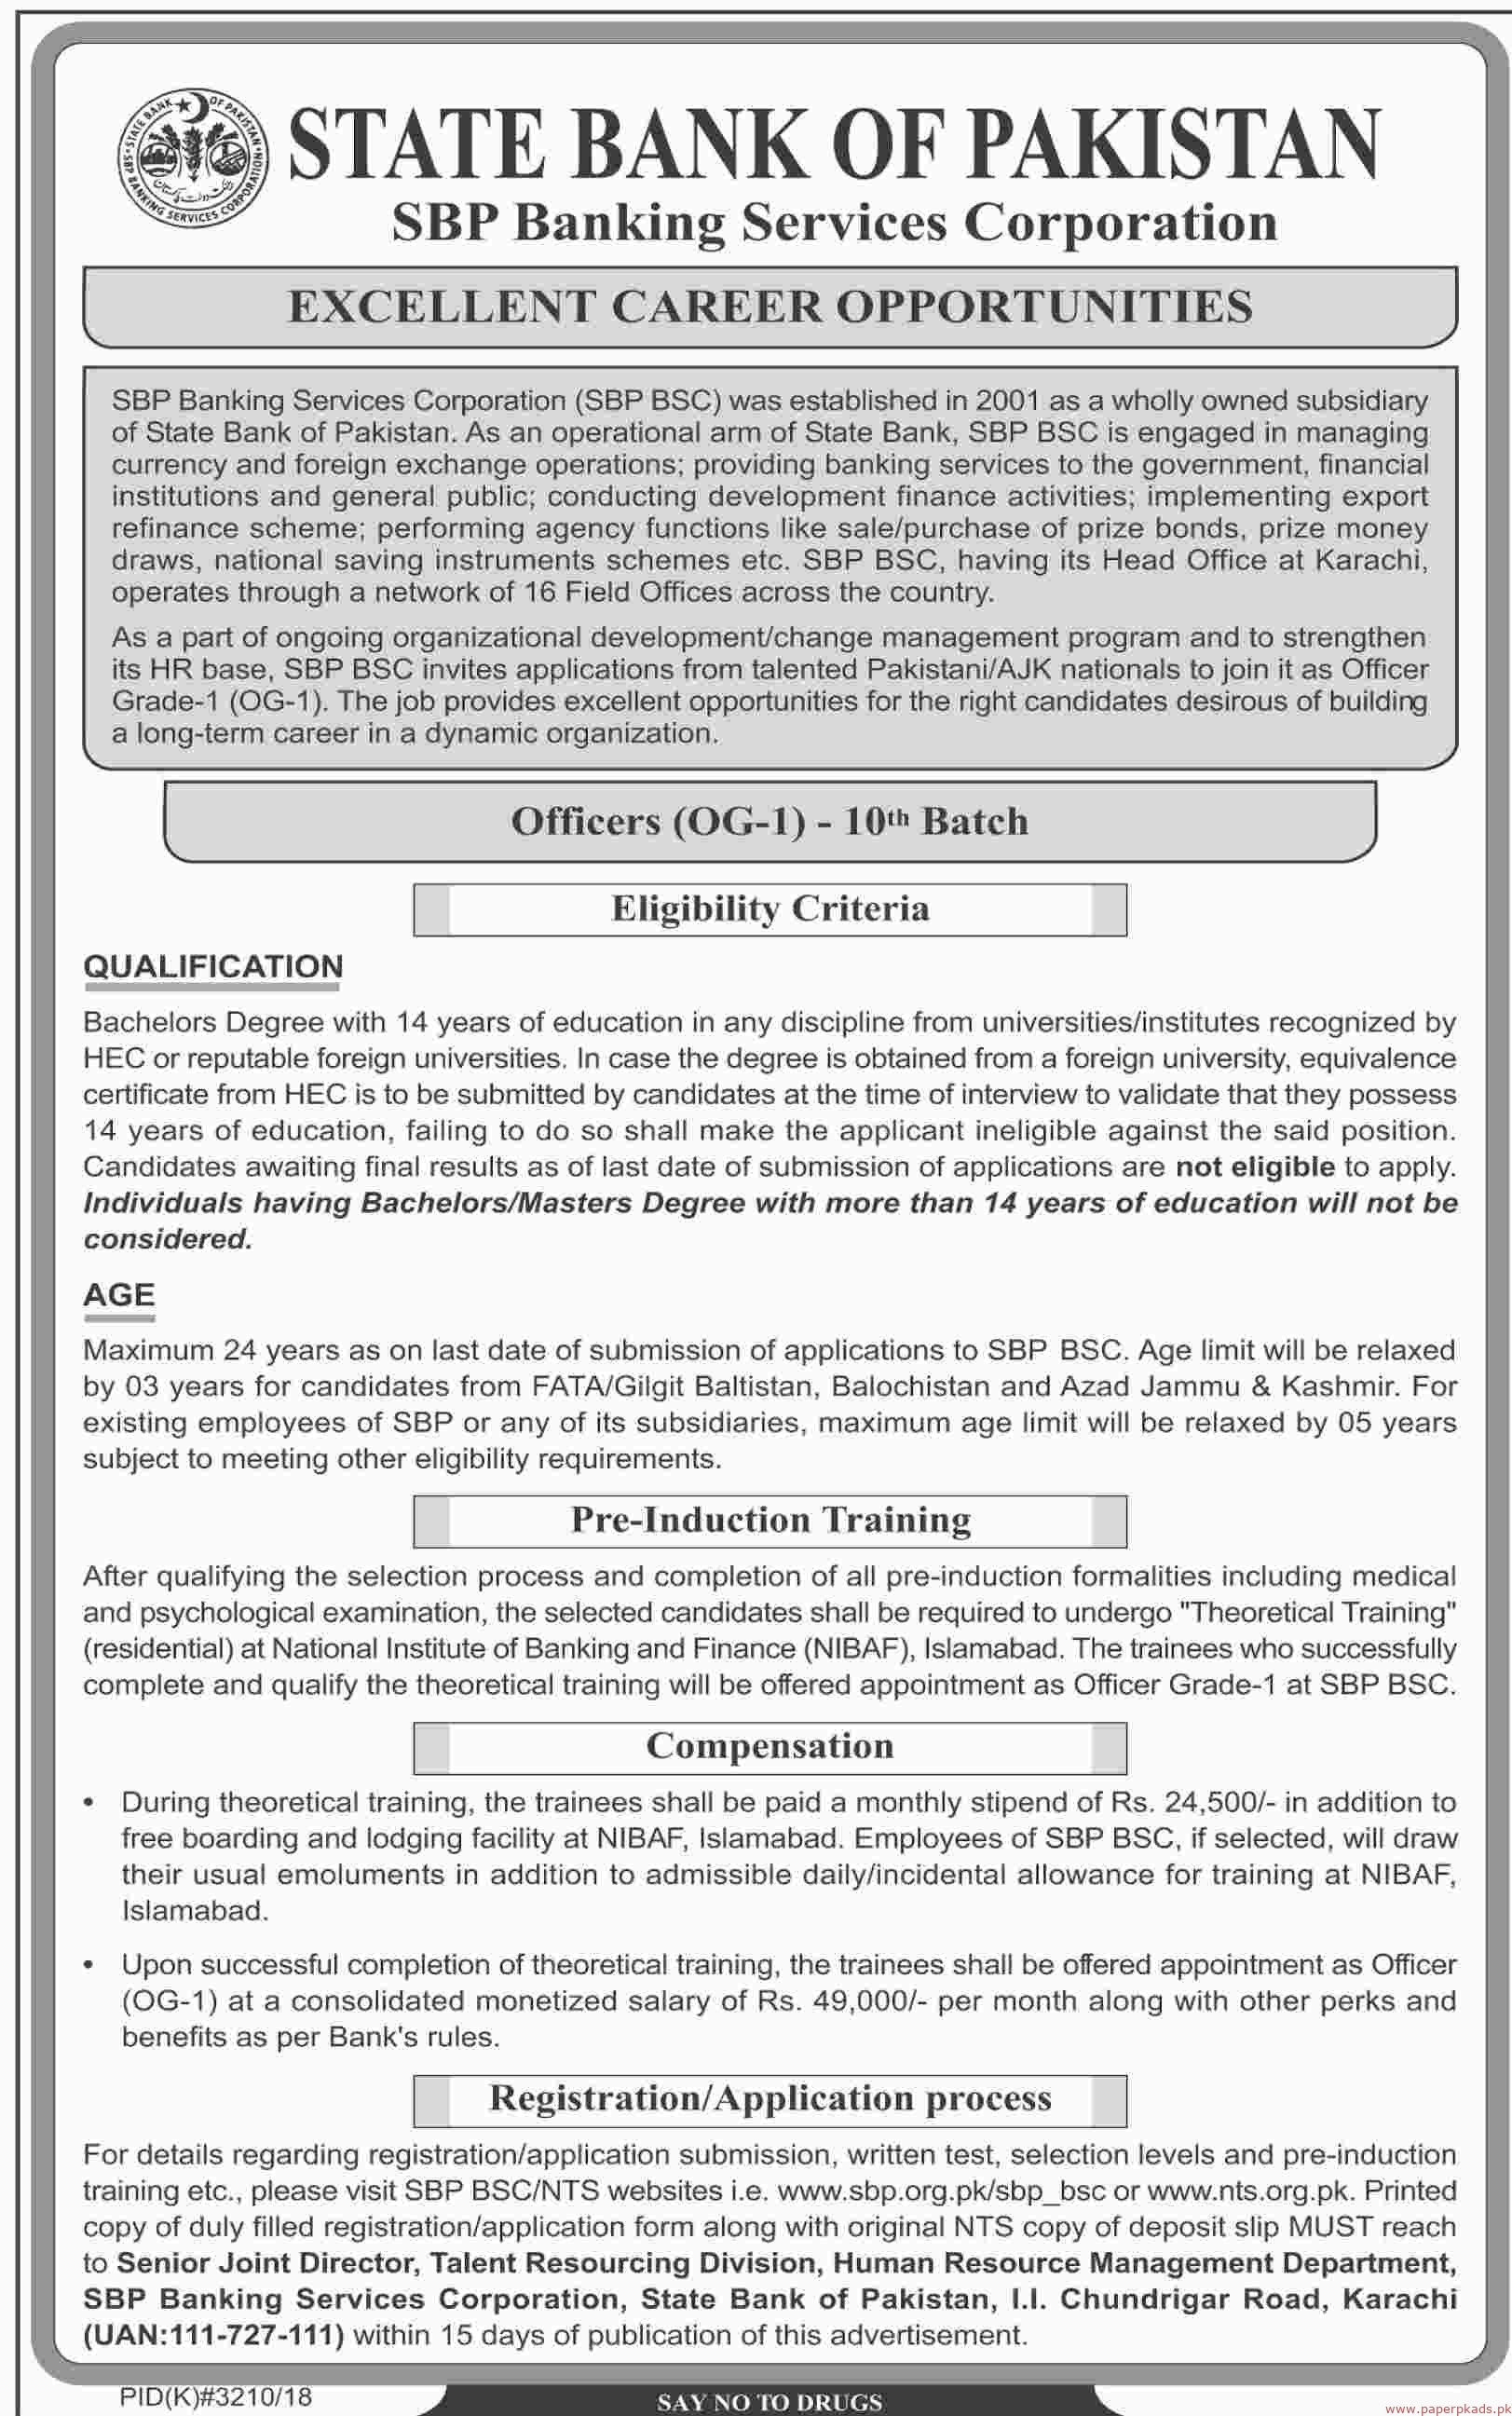 State Bank of Pakistan Jobs 2019 Latest